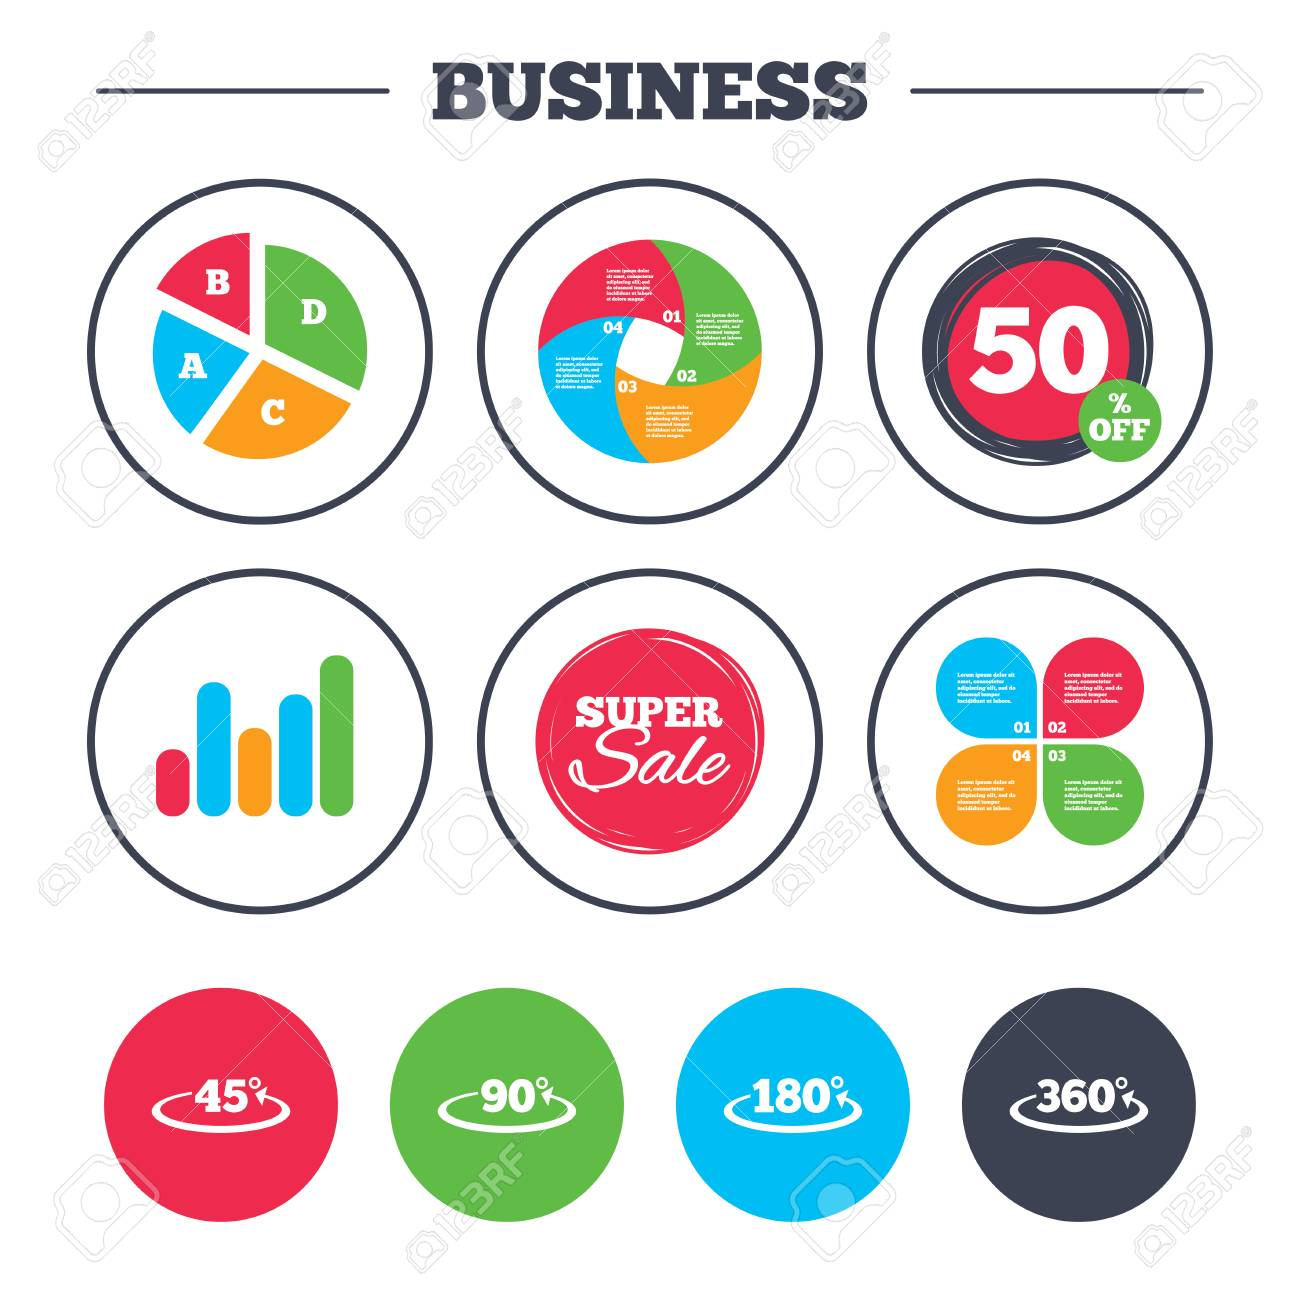 Business pie chart growth graph angle 45 360 degrees icons business pie chart growth graph angle 45 360 degrees icons geometry math nvjuhfo Gallery